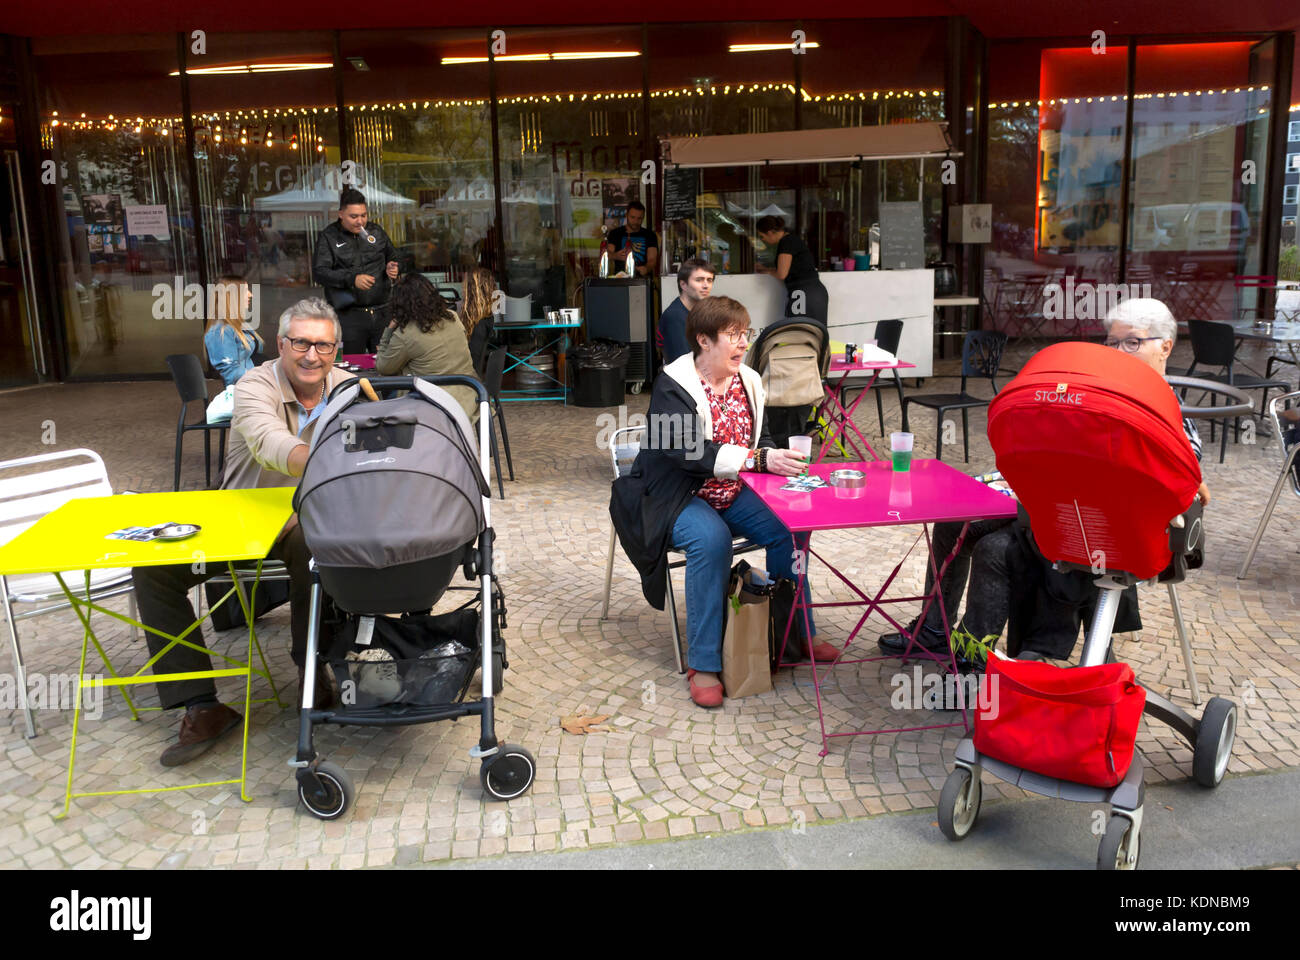 Montreuil, France, Local Products, French Cafe on Public Square in Paris Suburbs - Stock Image